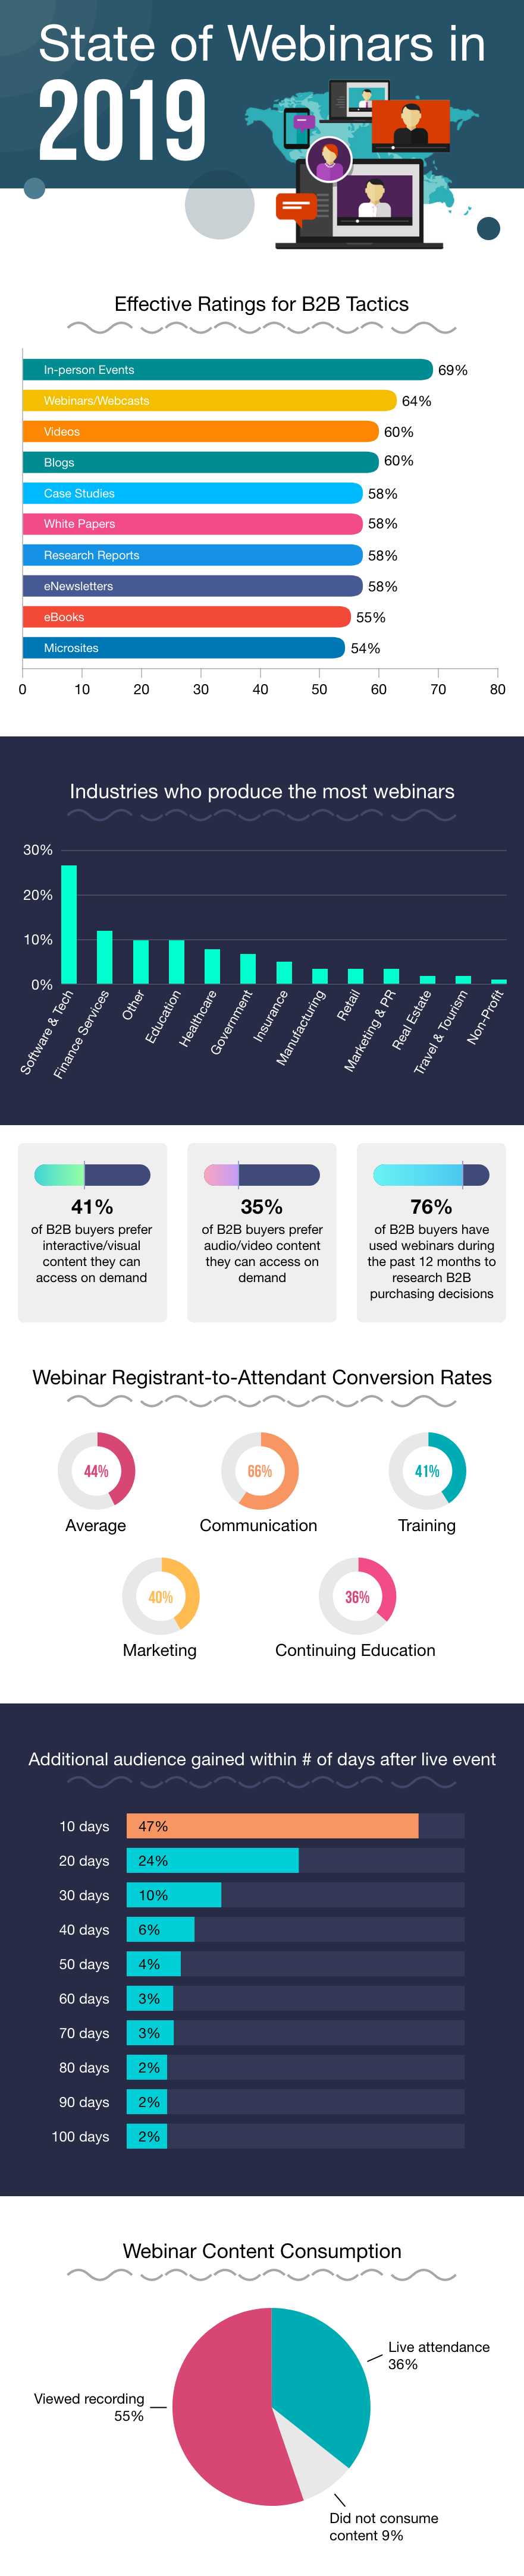 15 Ways to Create Webinars that Converts and Drive Engagement